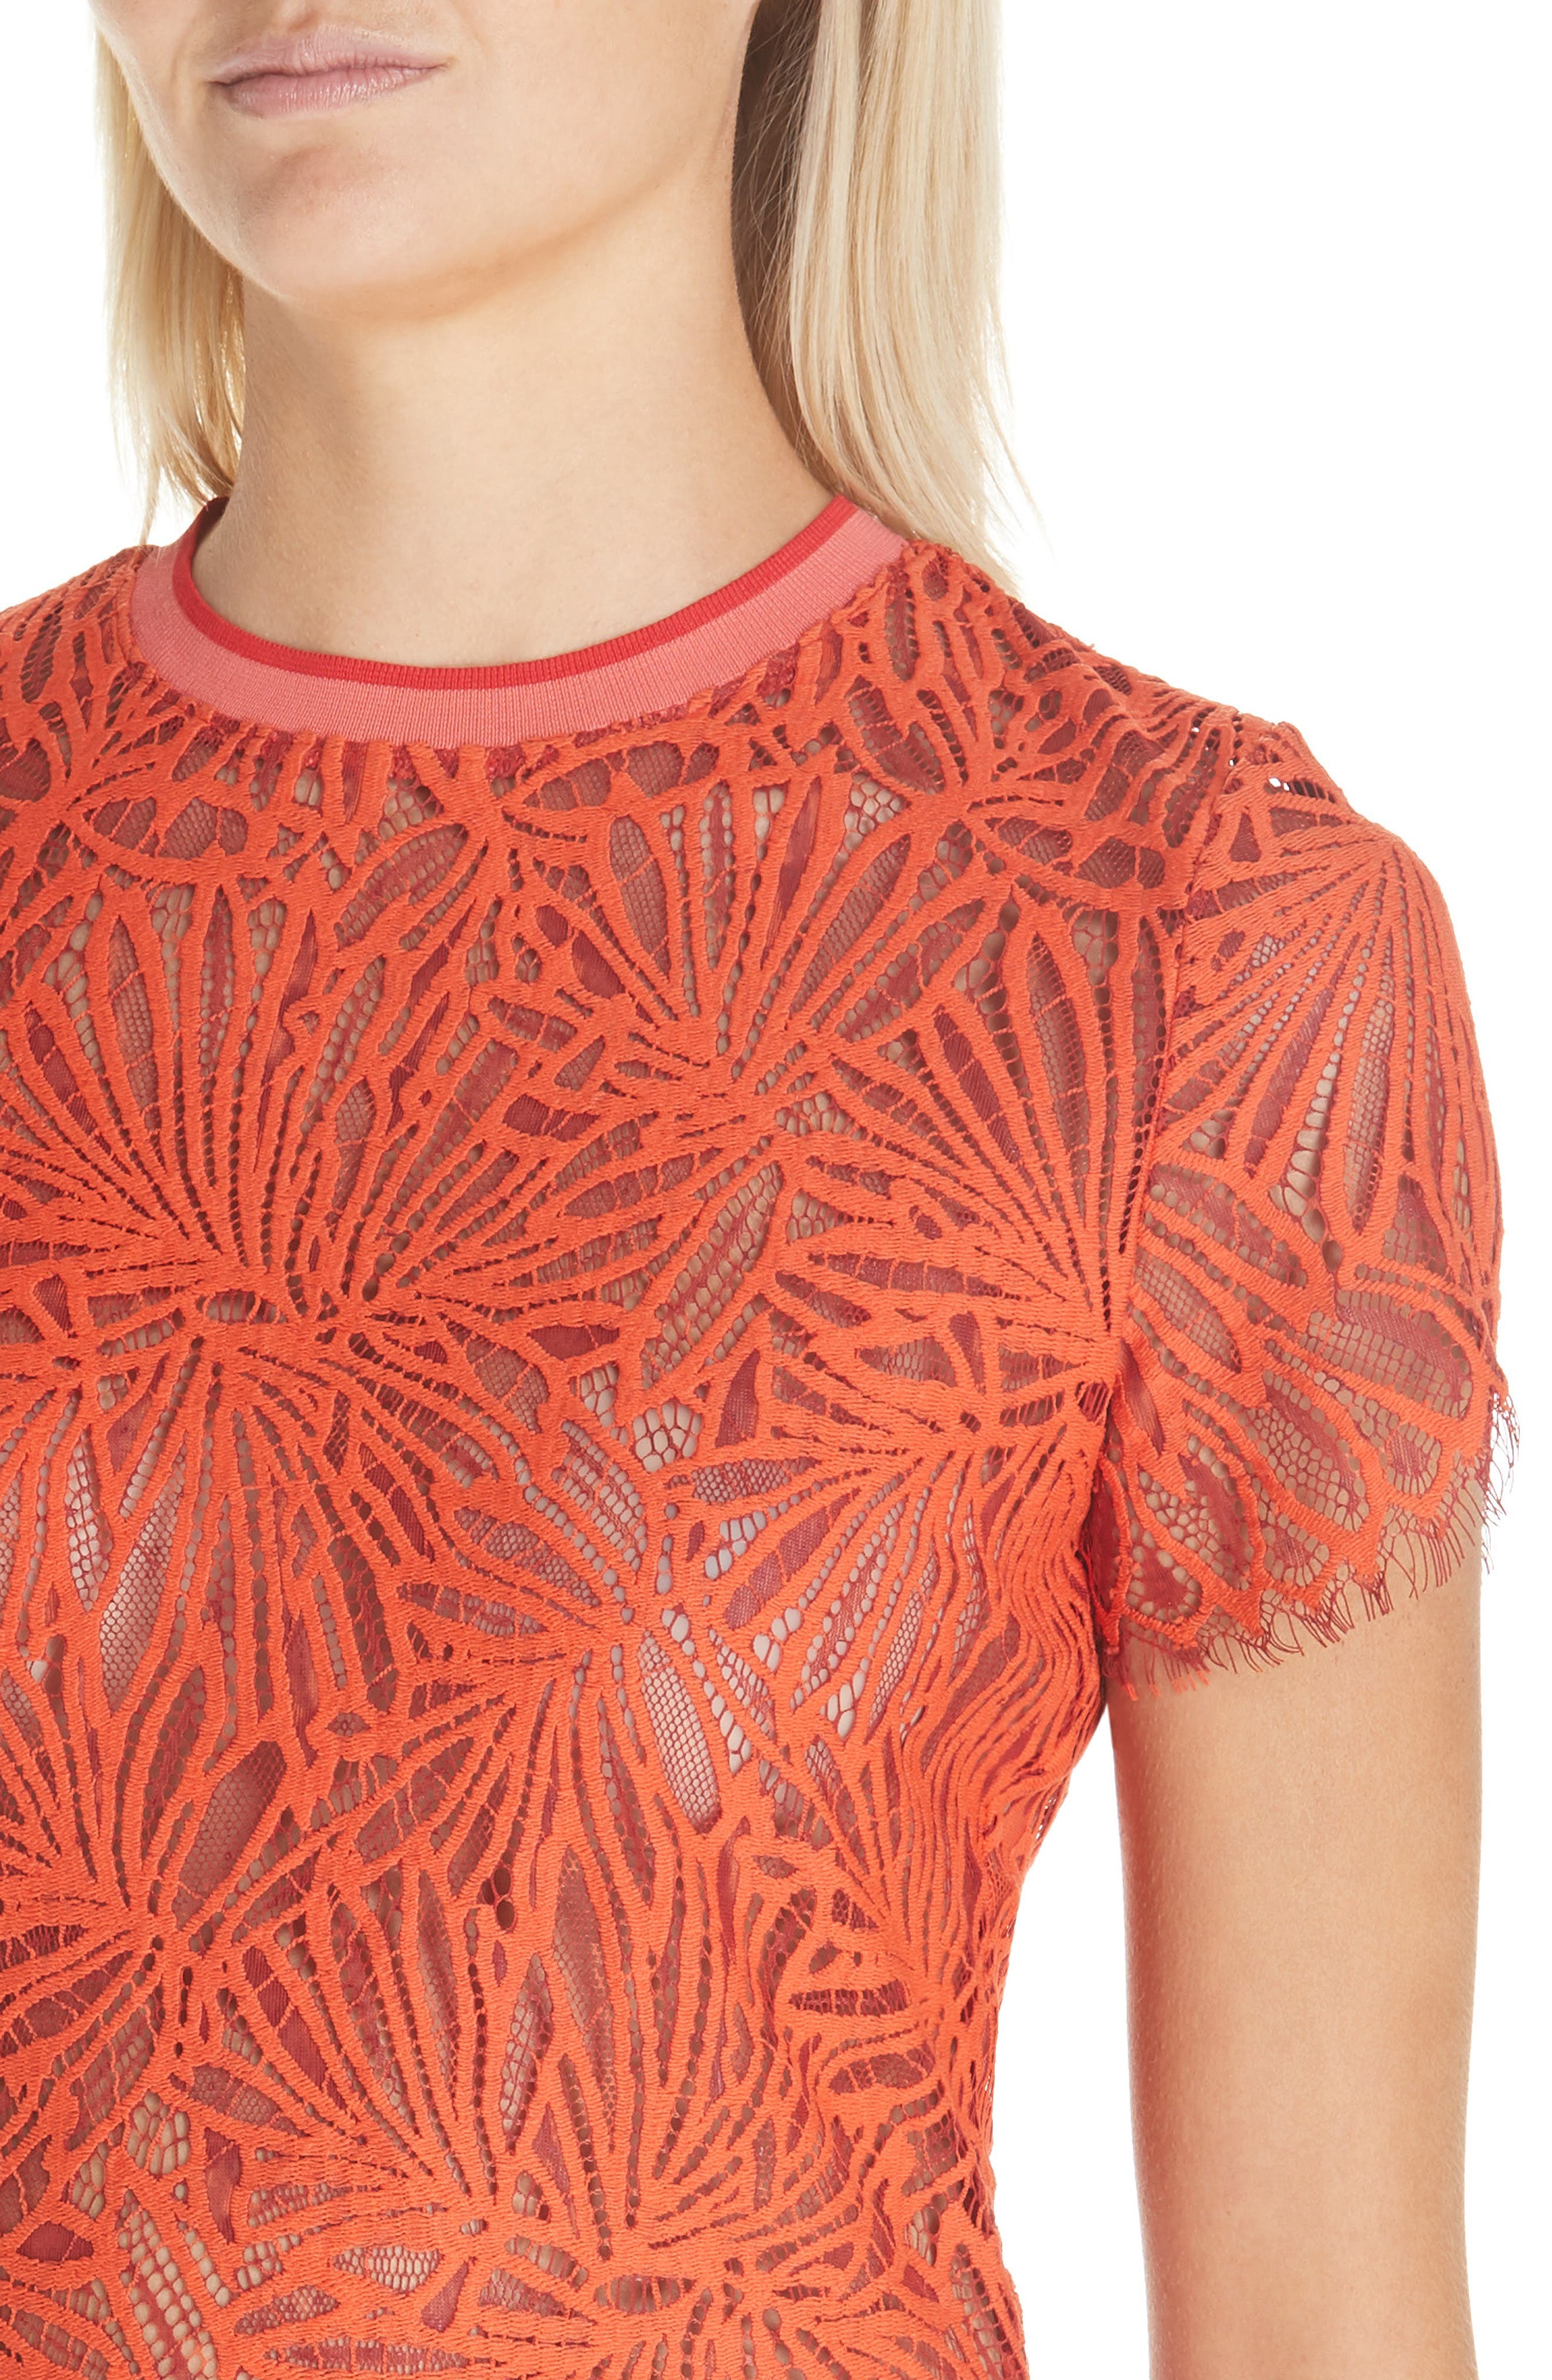 PROENZA SCHOULER,                             Scalloped Stretch Lace Top,                             Alternate thumbnail 4, color,                             TANGERINE